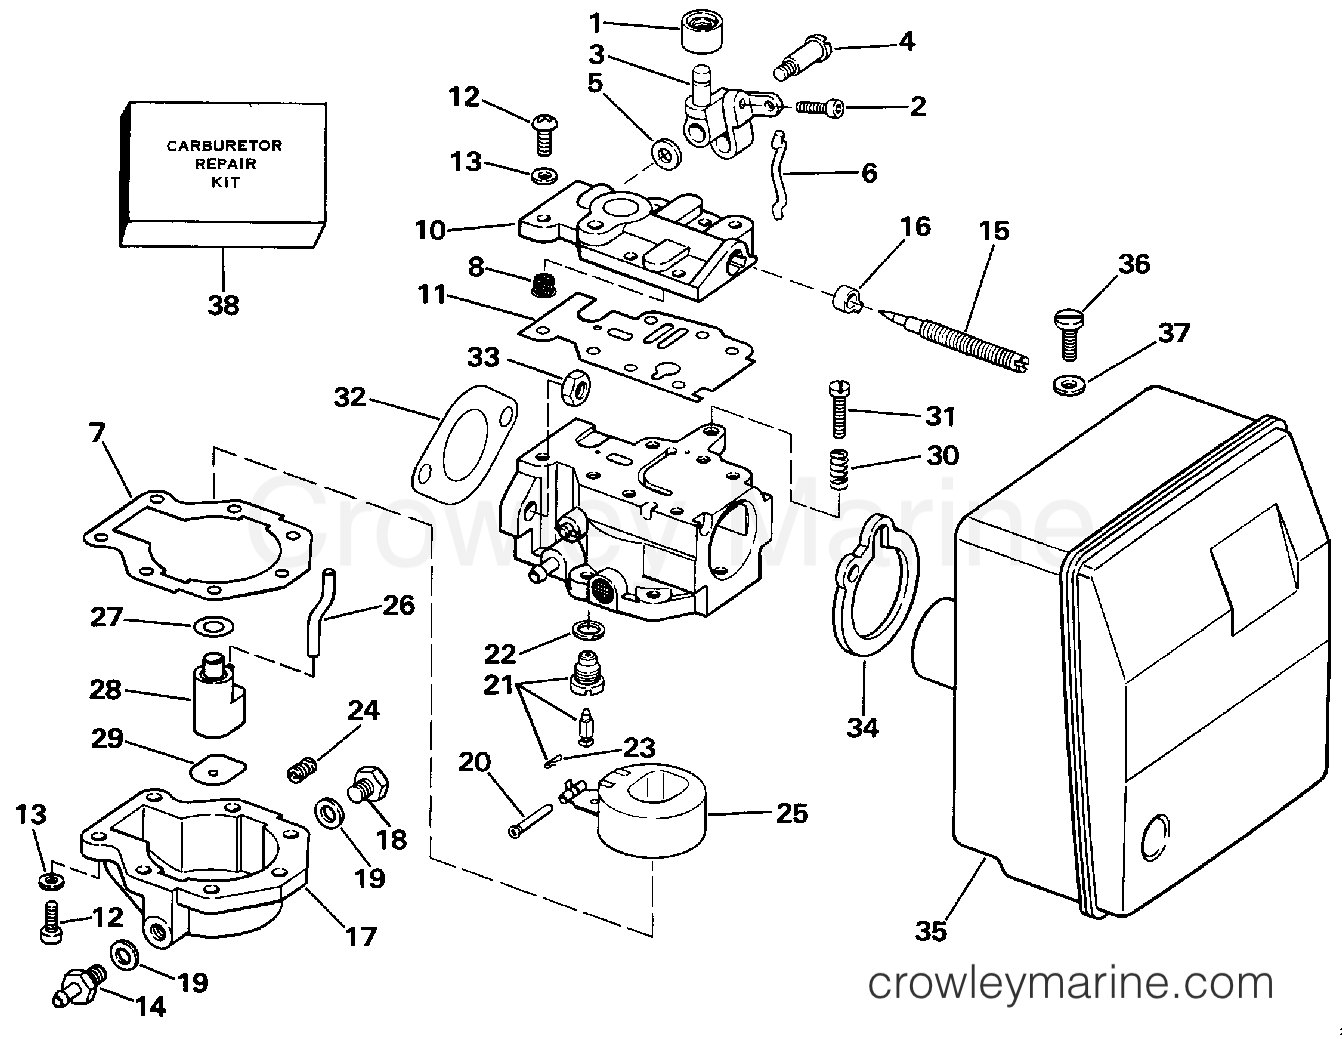 Carburetor Early Production